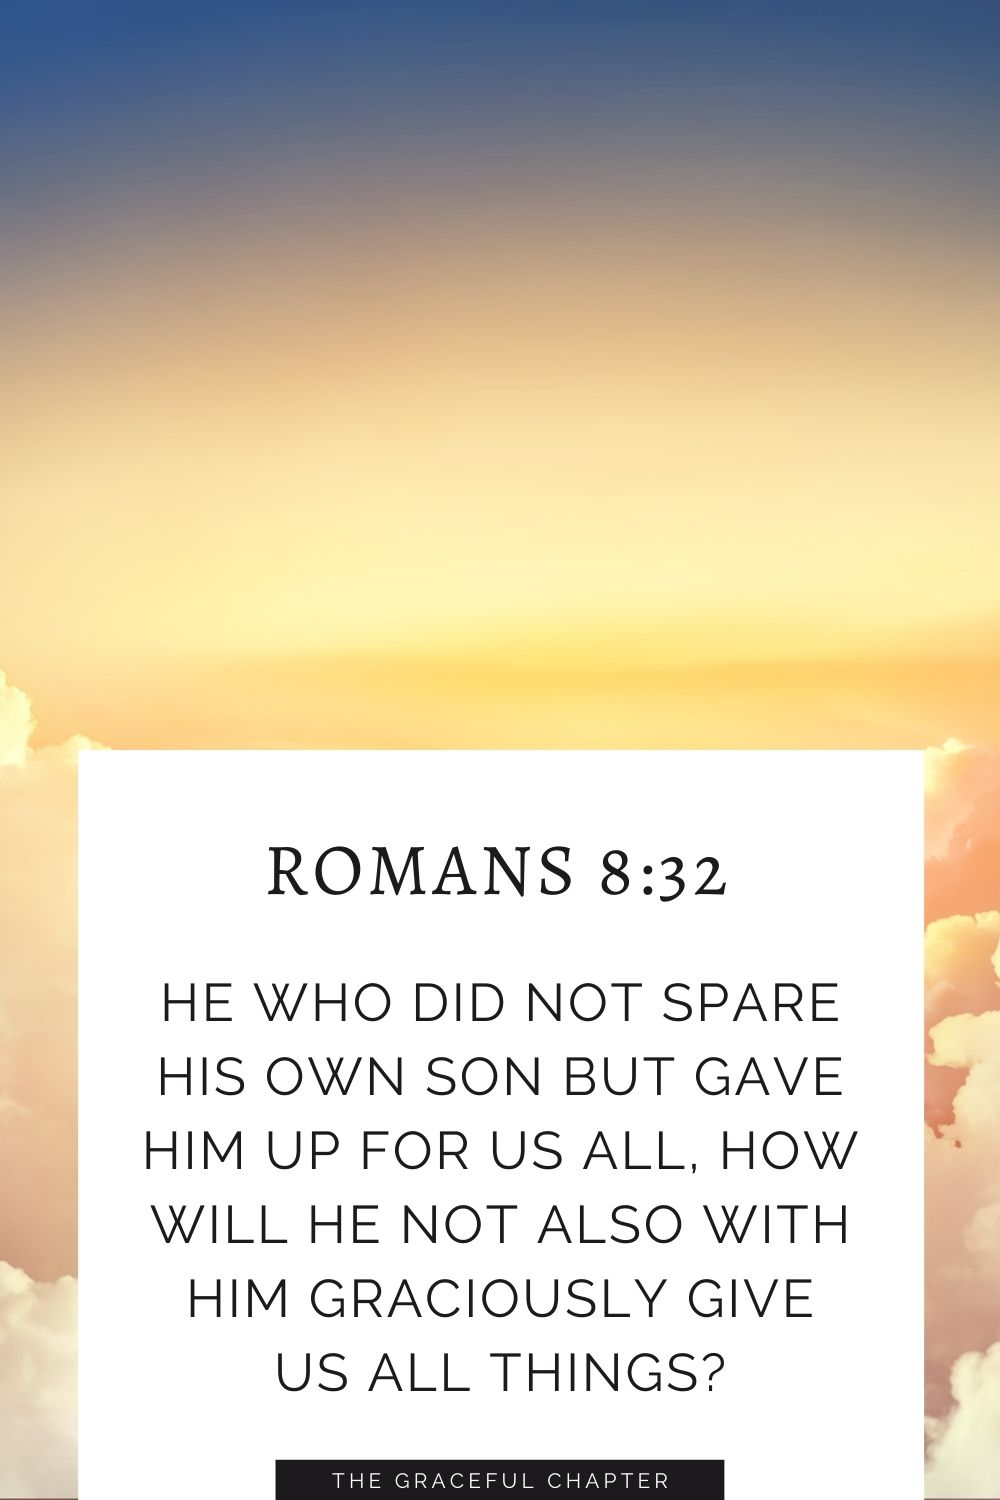 He who did not spare his own Son but gave him up for us all, how will he not also with him graciously give us all things? Romans 8:32